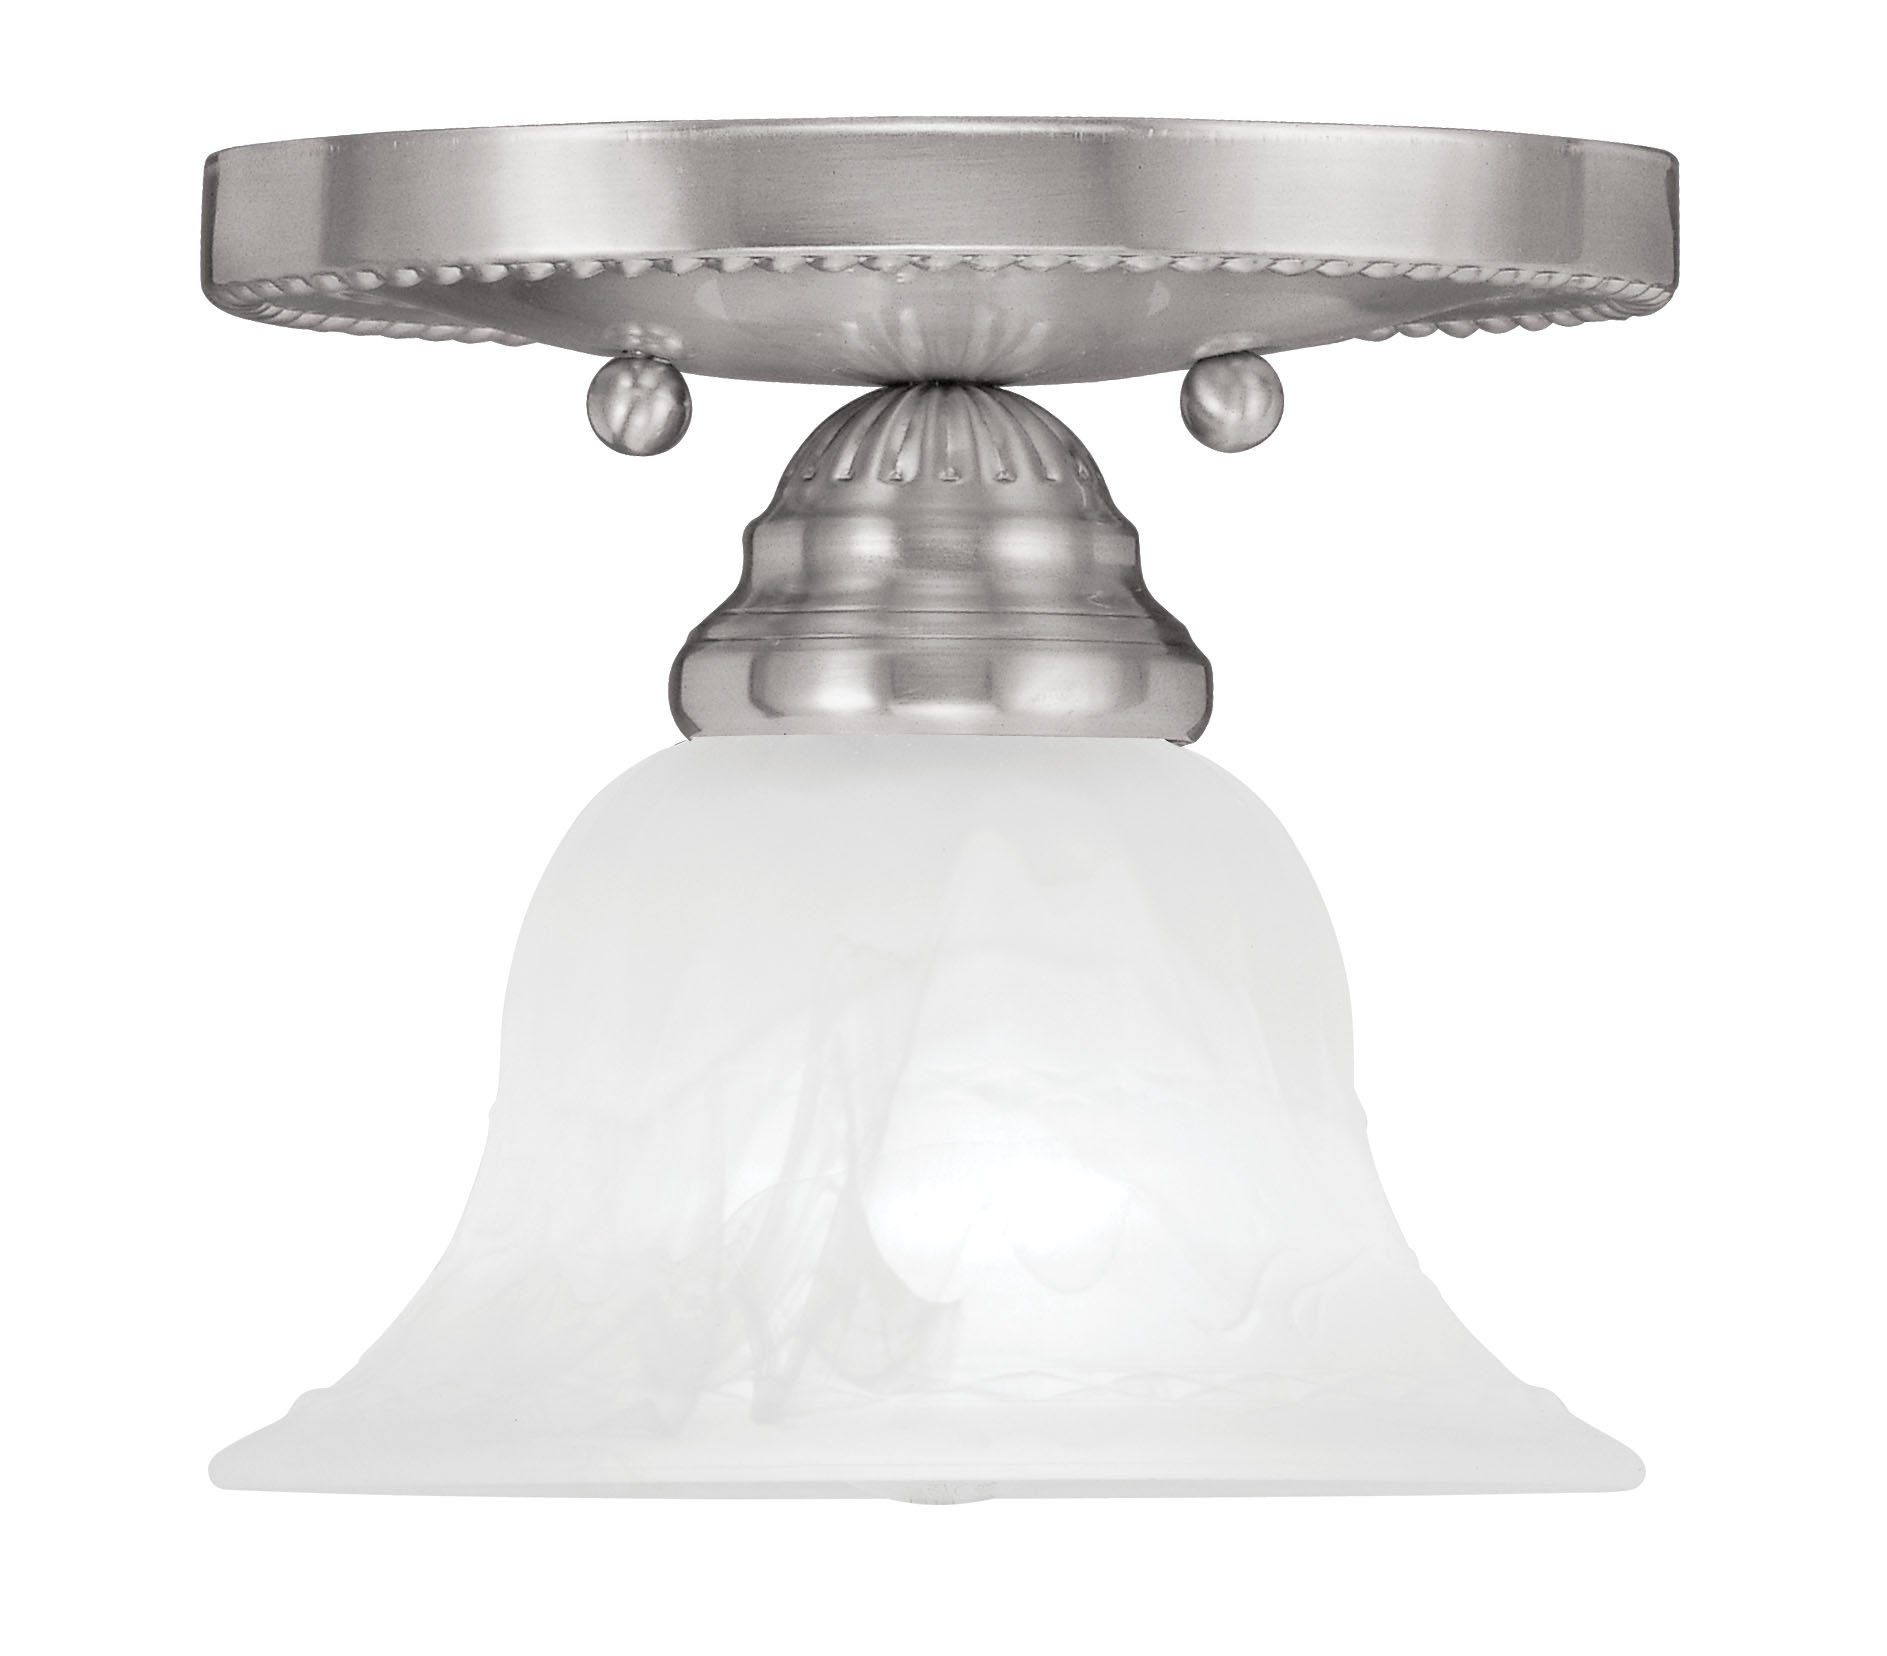 Livex Lighting 1530-91 Edgemont 1-Light Ceiling Mount, Brushed Nickel